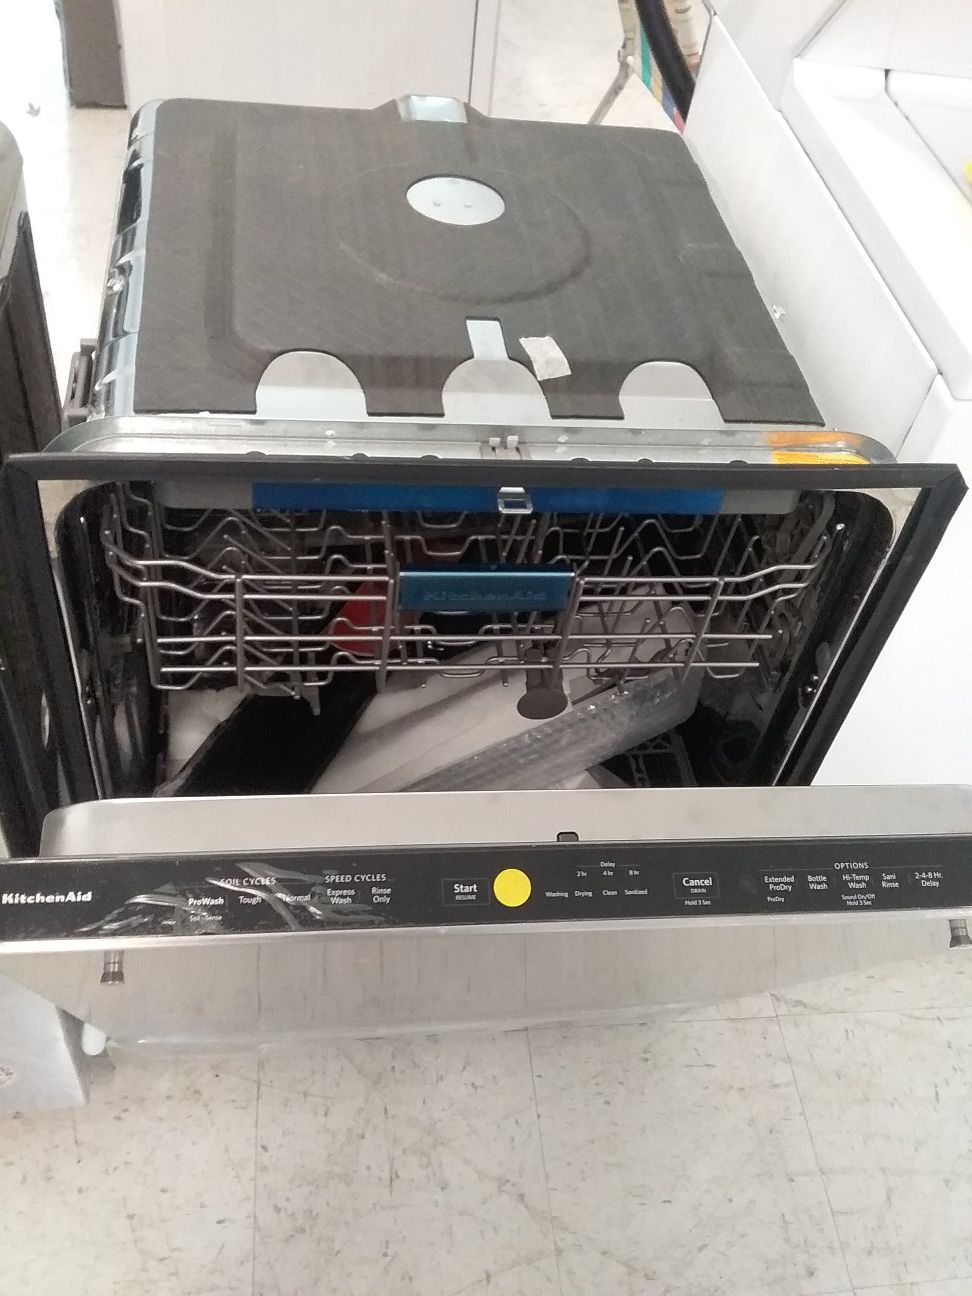 Kitchenaid dishwashers stainless steel new scratch and dents good condition 6 months warranty